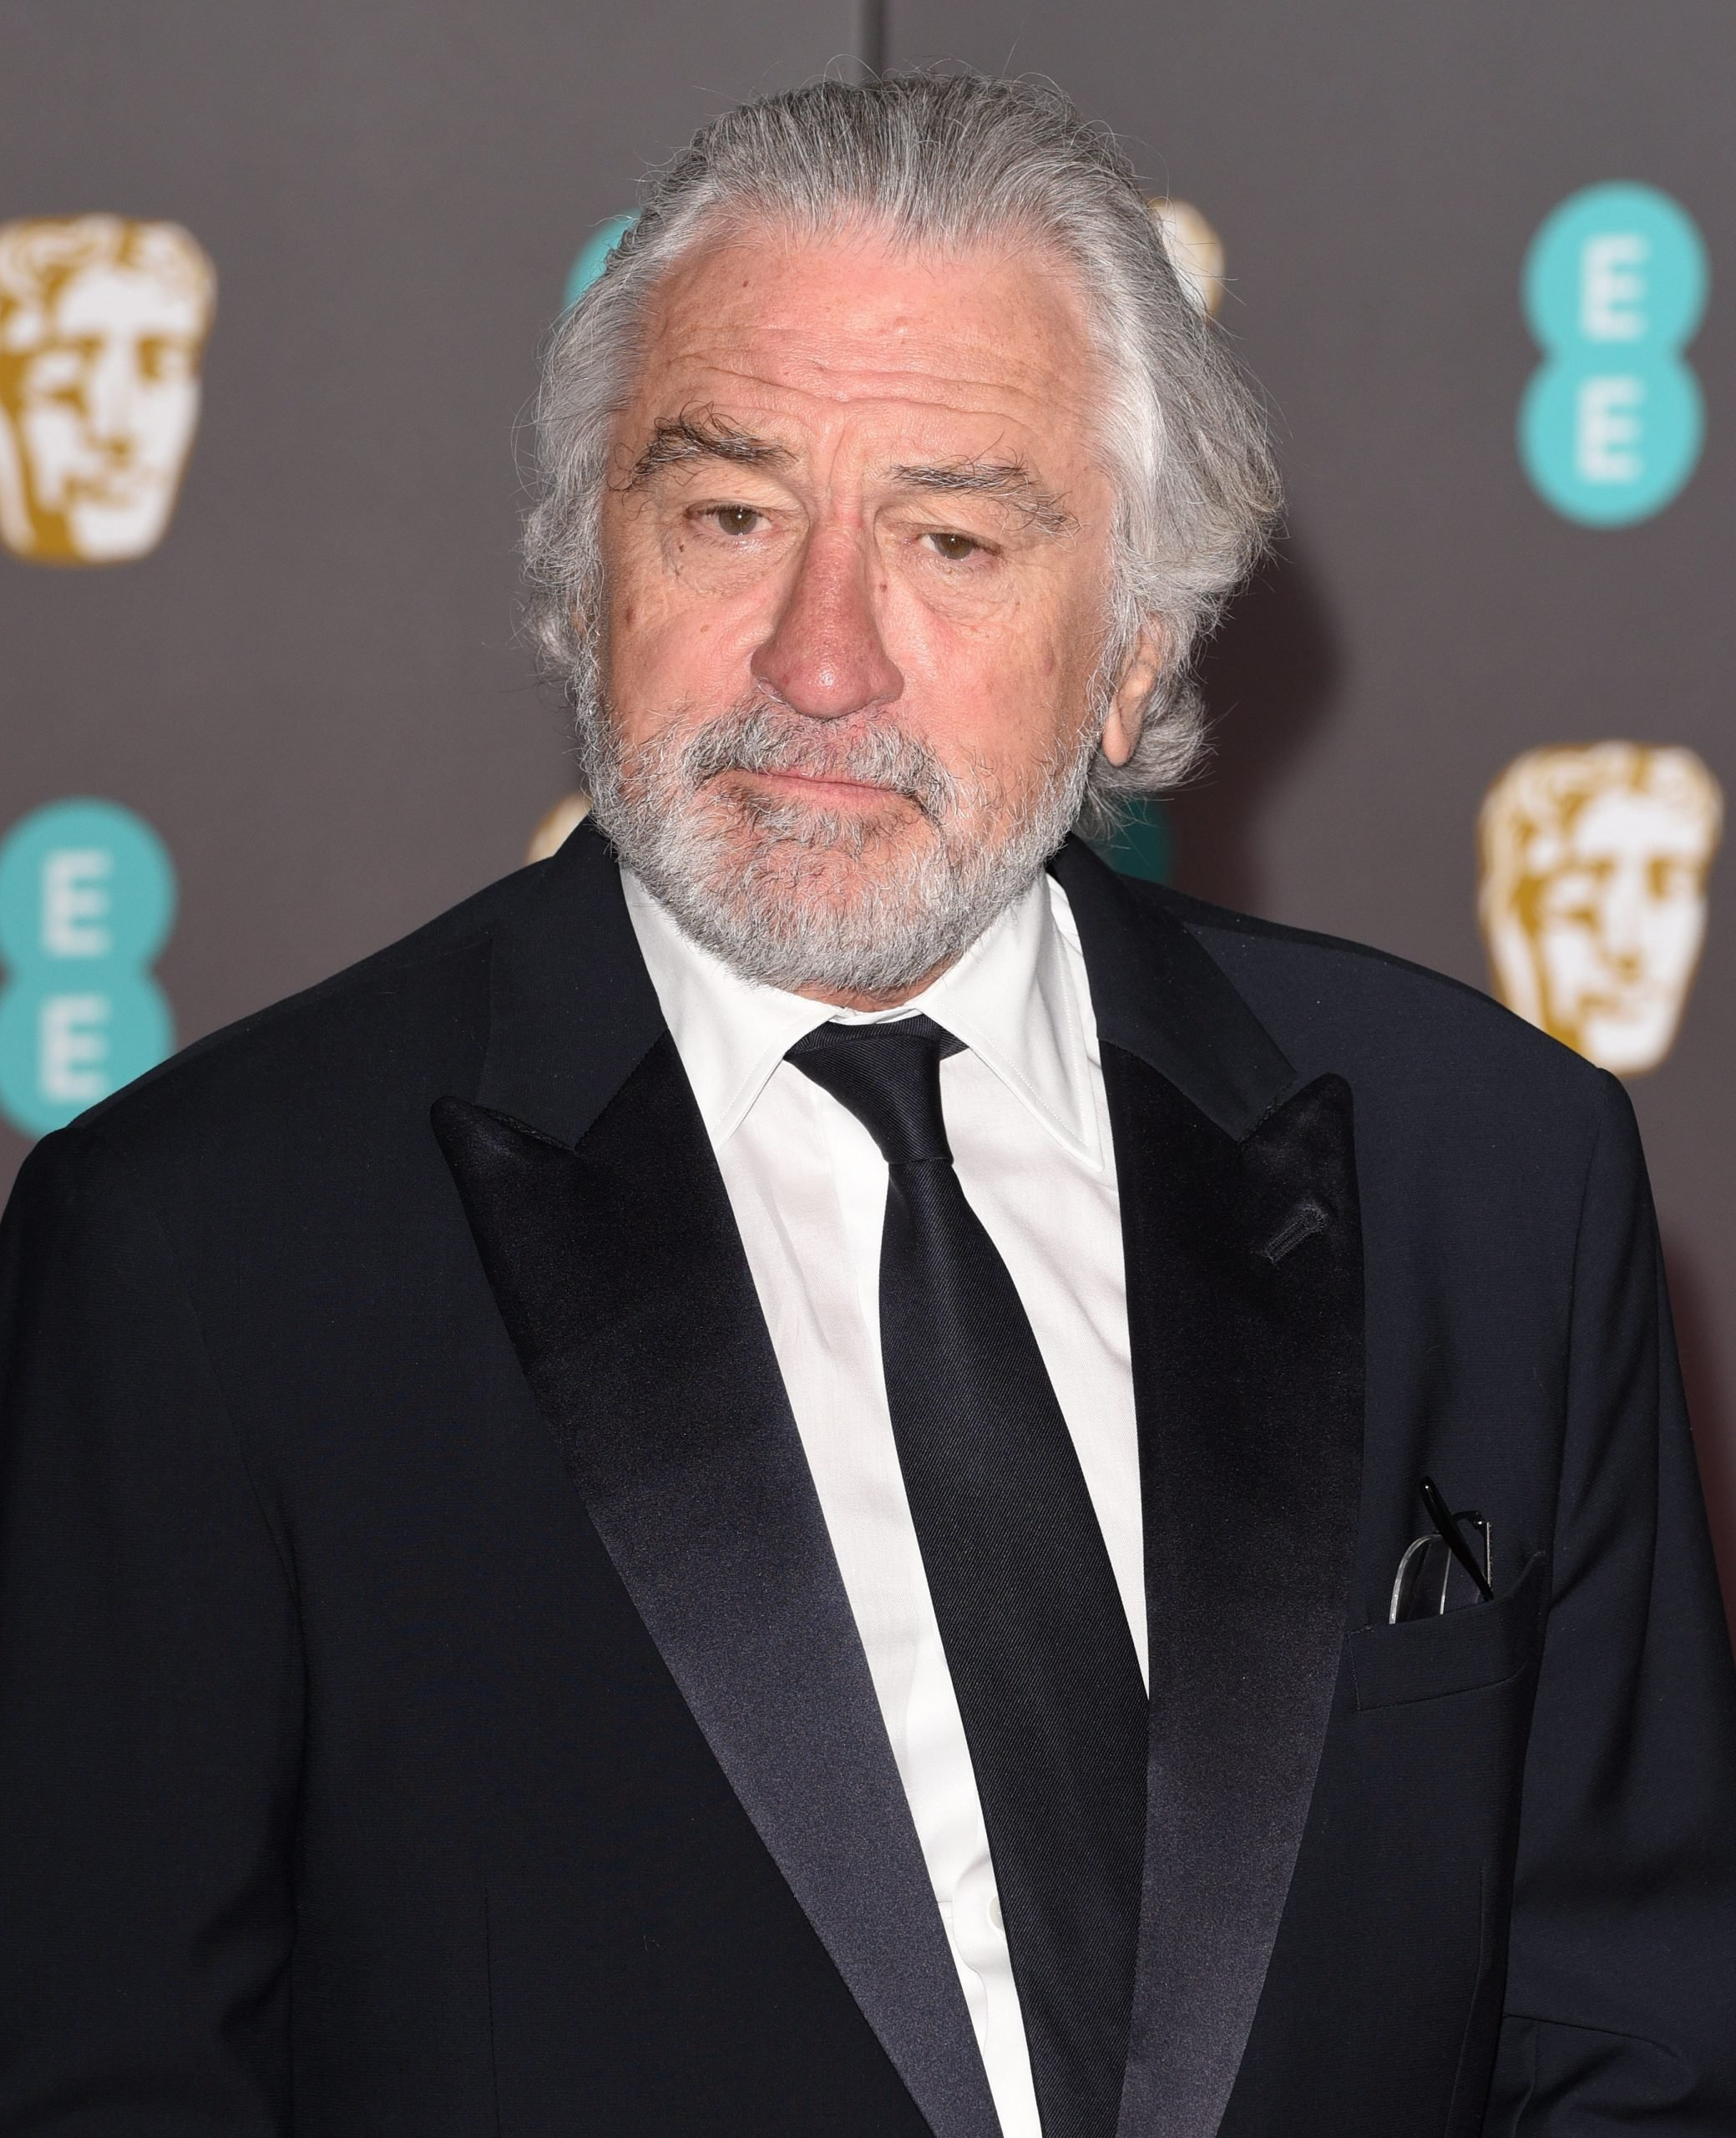 Robert De Niro Earns Backlash After Saying He 'Will Be Lucky If He Makes $7.5 Million This Year'